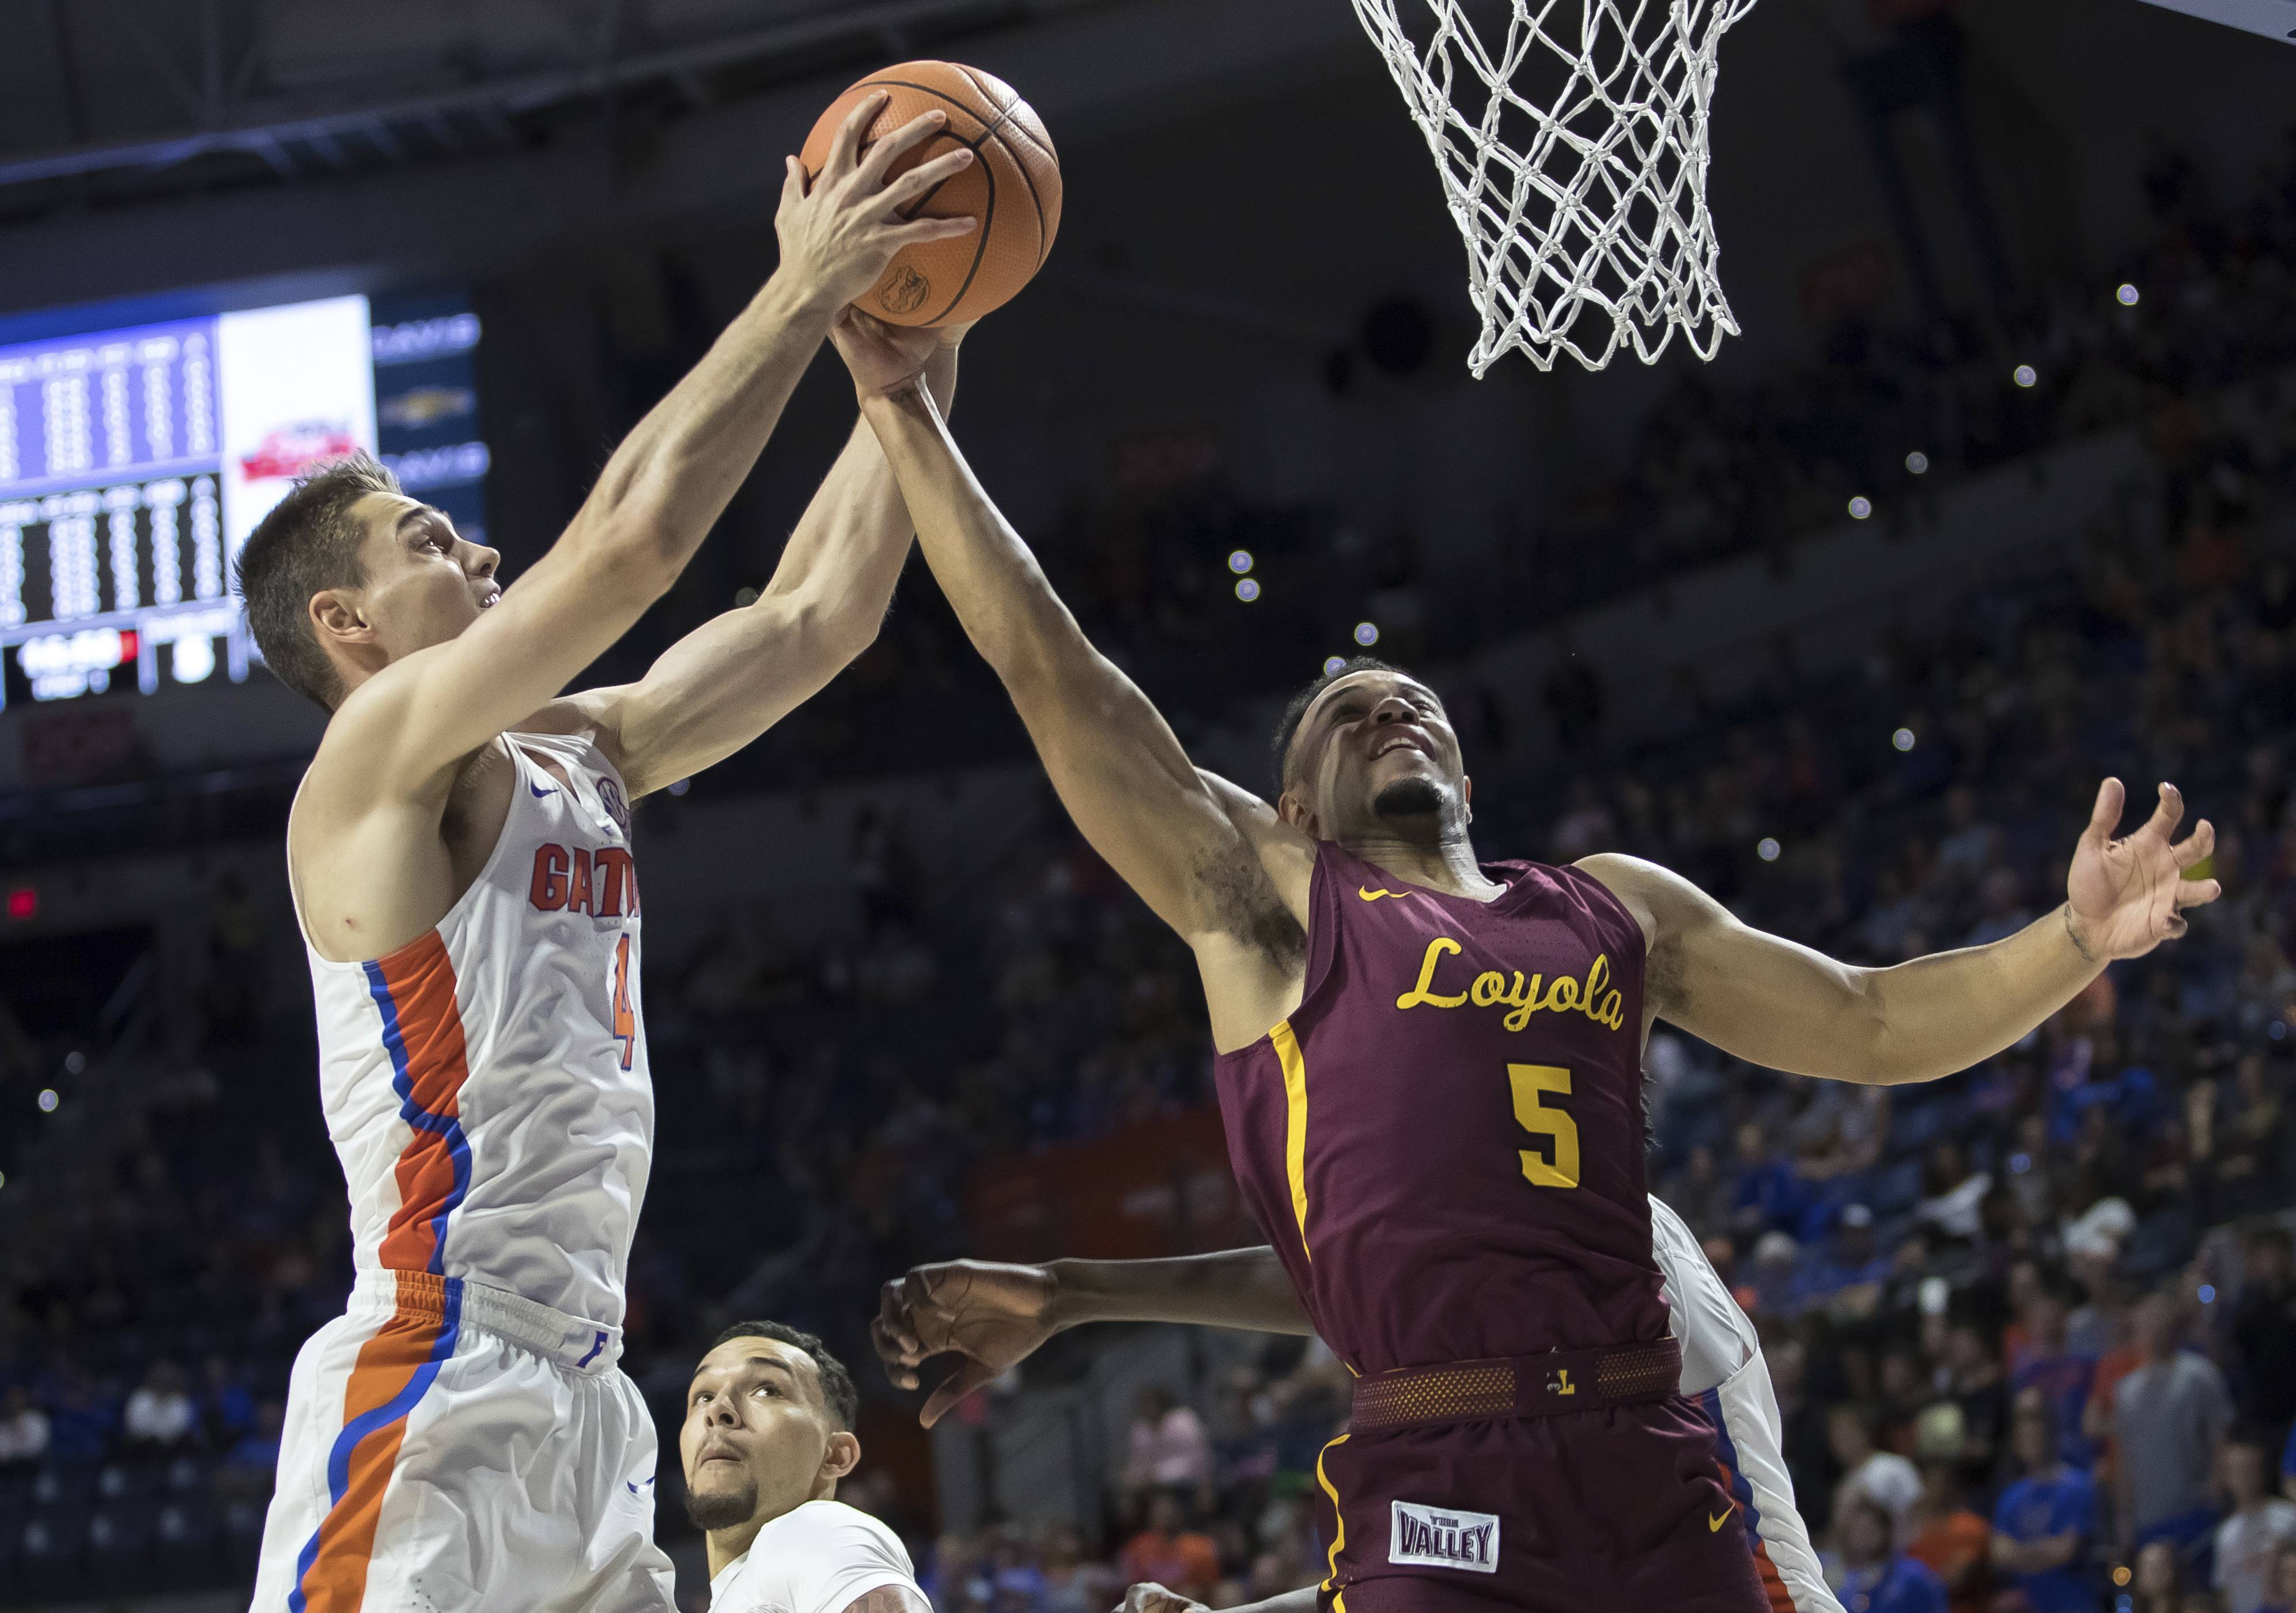 Florida guard Egor Koulechov (4) and Loyola of Chicago guard Marques Townes (5) battle for a rebound during the first half of an NCAA college basketball game in Gainesville, Fla., Wednesday, Dec. 6, 2017. (AP Photo/Ron Irby)